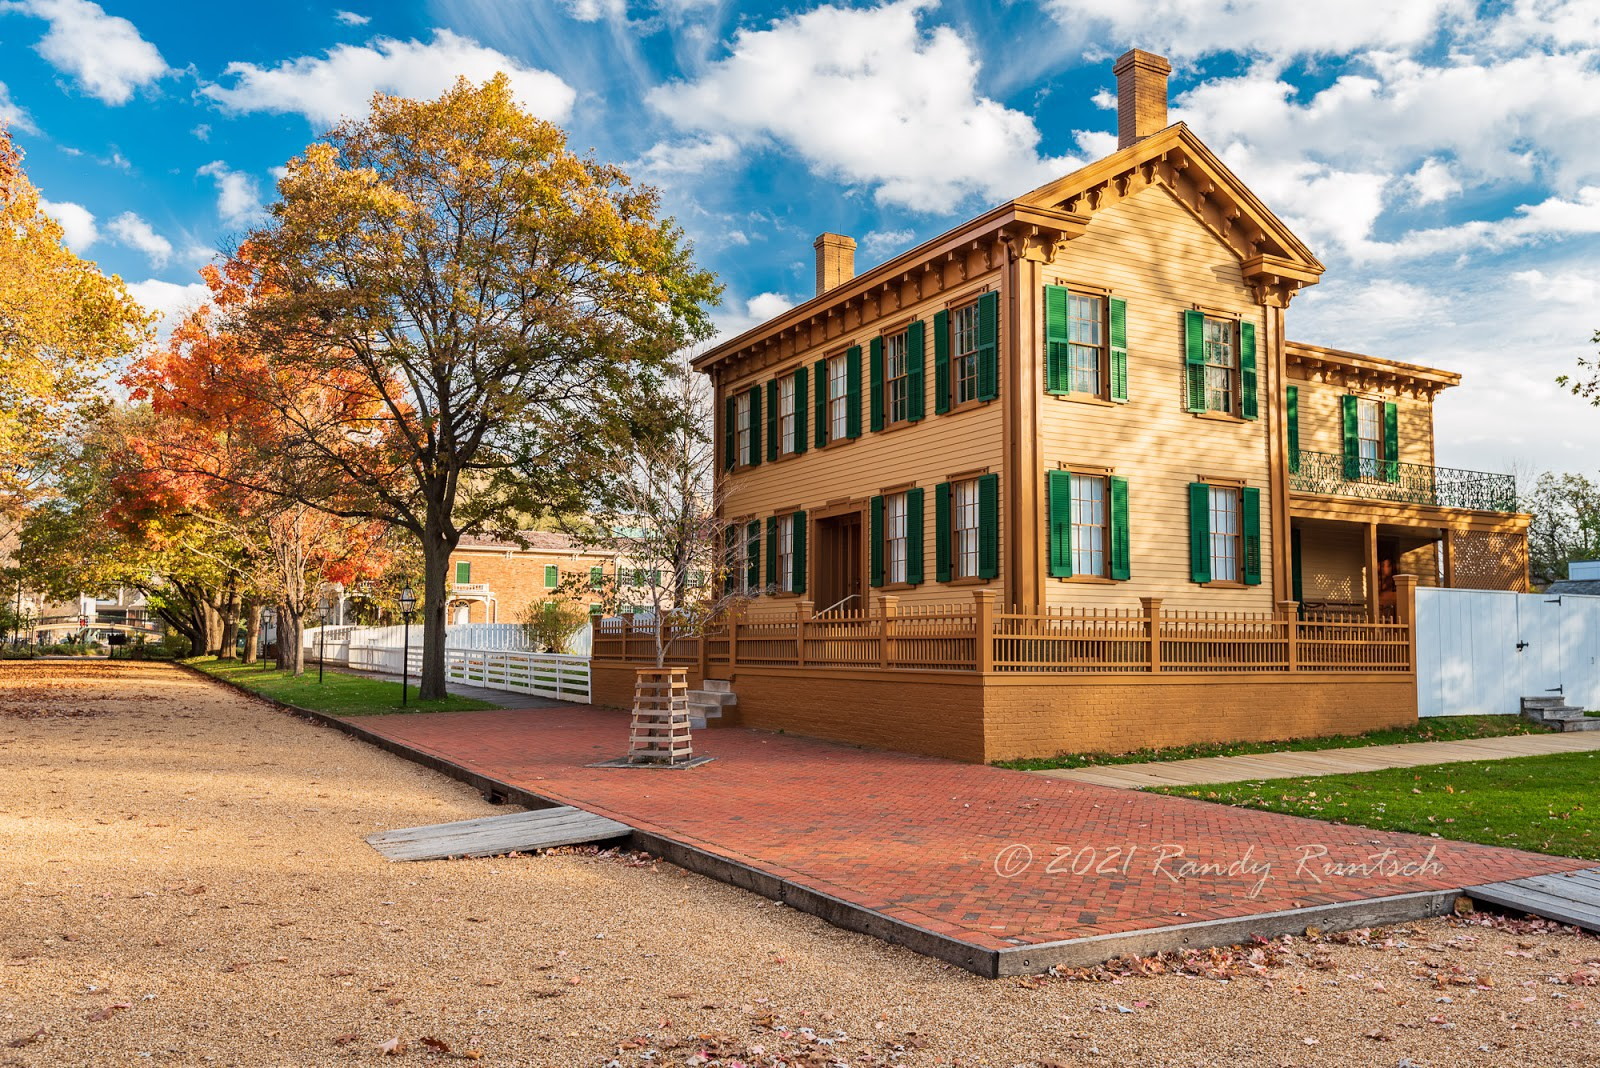 Abraham Lincoln home in Springfield, Illinois. Photo by the author.